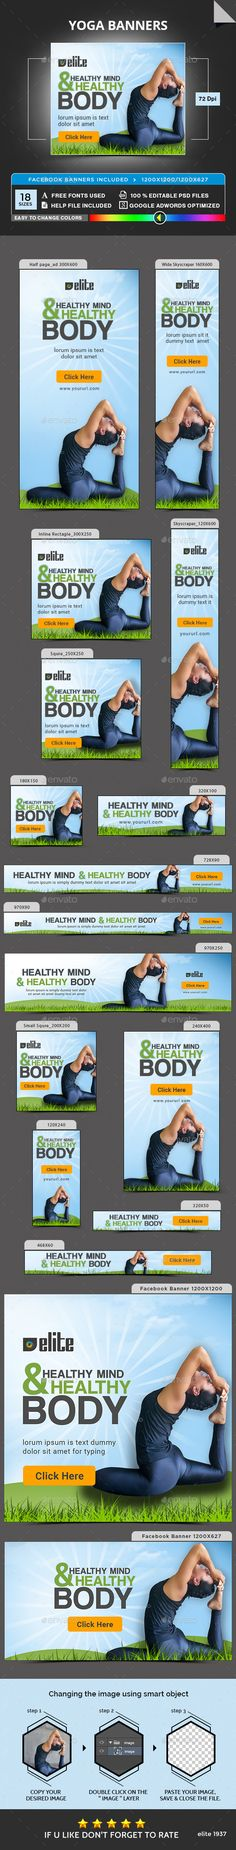 Yoga #Banners - Banners & Ads #Web Elements Download here: https://graphicriver.net/item/yoga-banners/18565971?ref=alena994